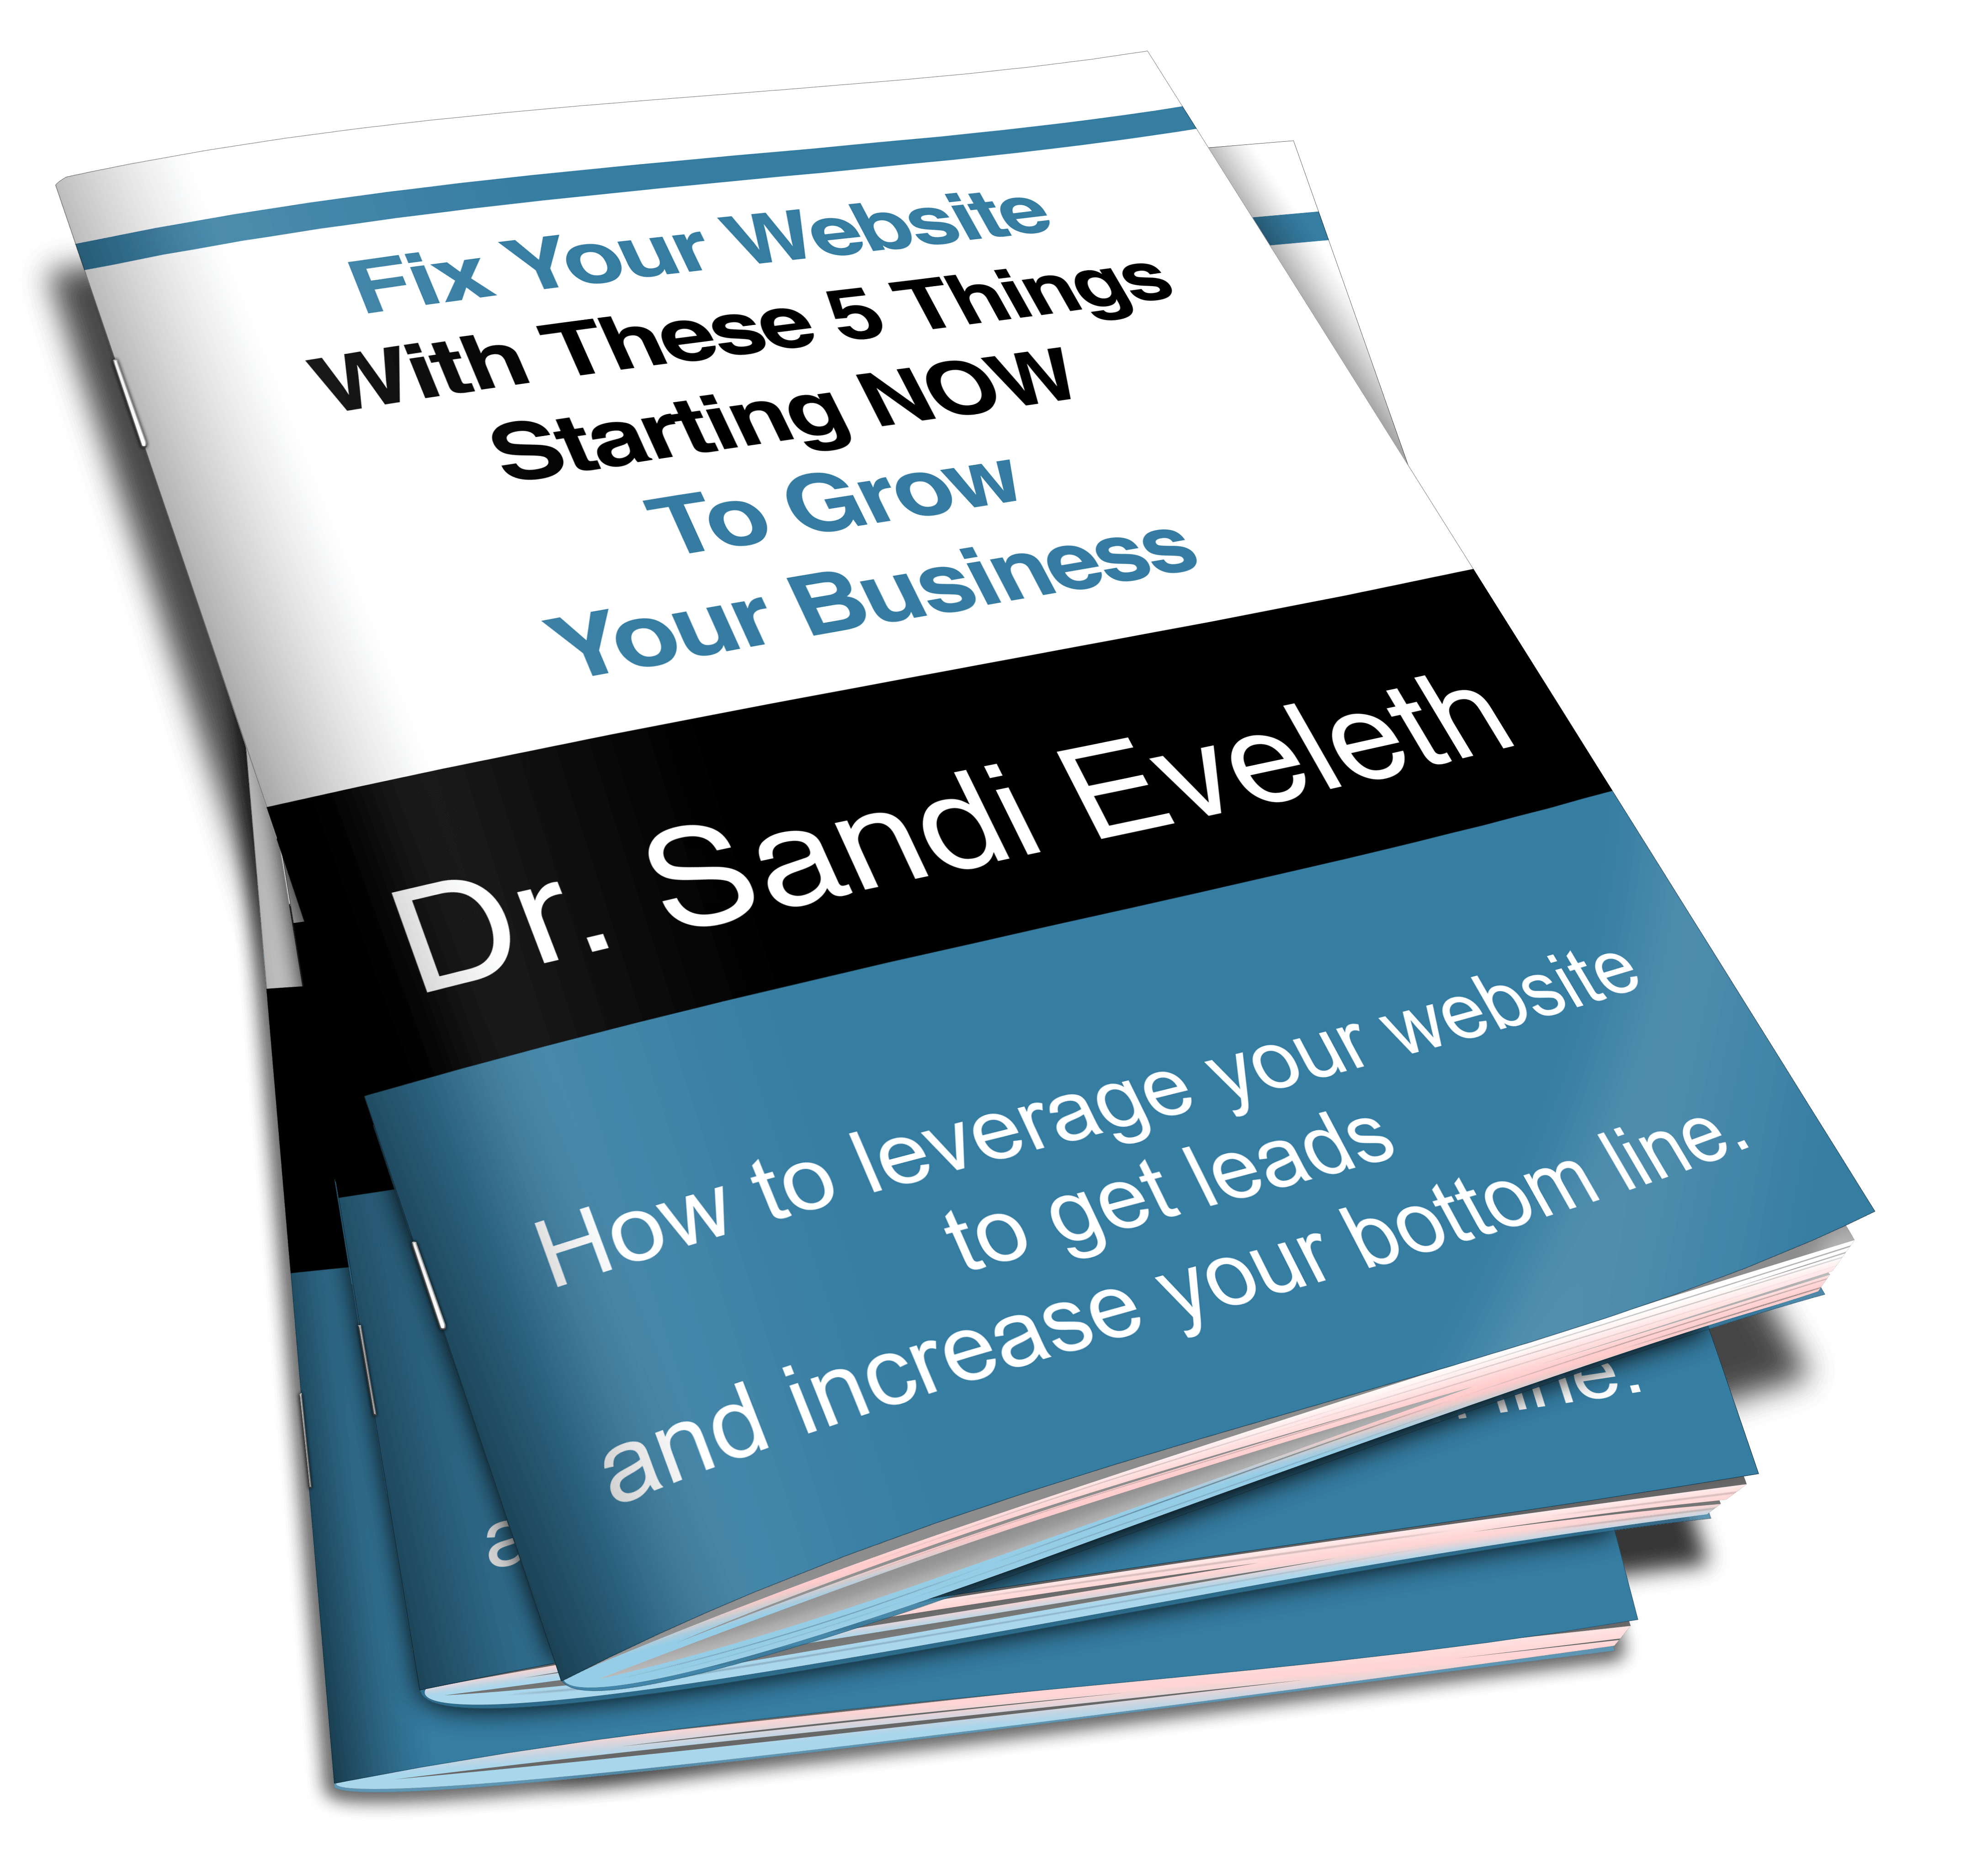 FREE eBook - Fix Your Website with These 5 Things Starting NOW to Grow Your Business